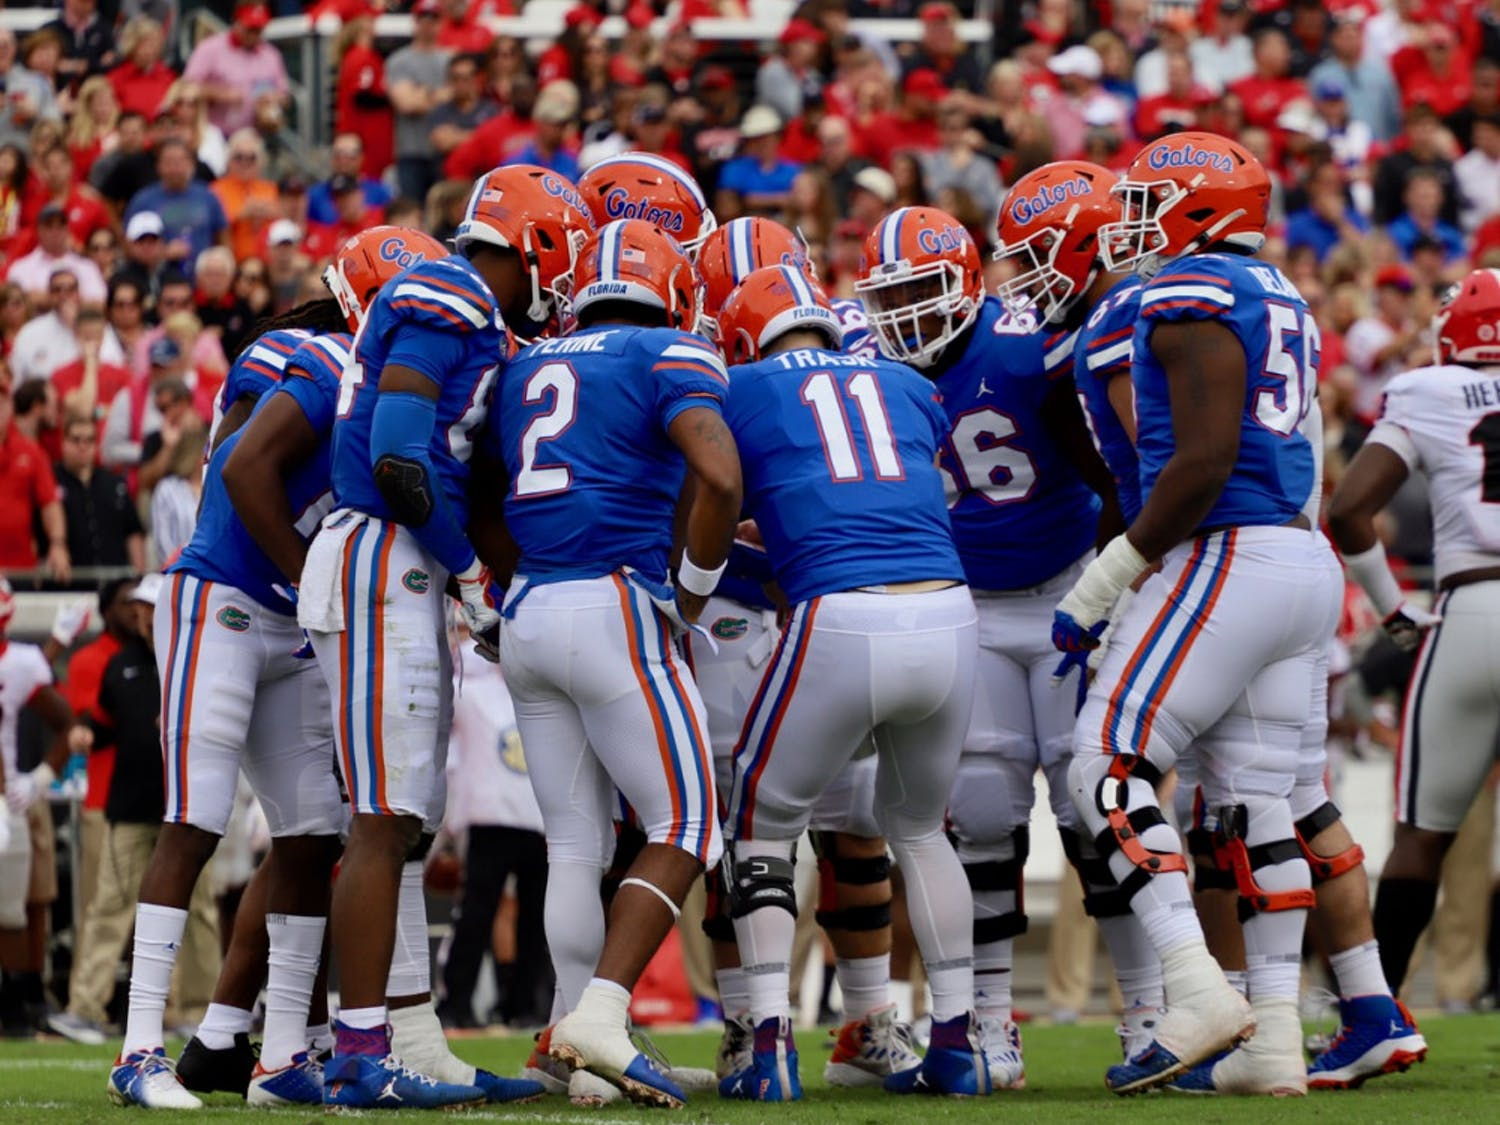 Gators in the huddle